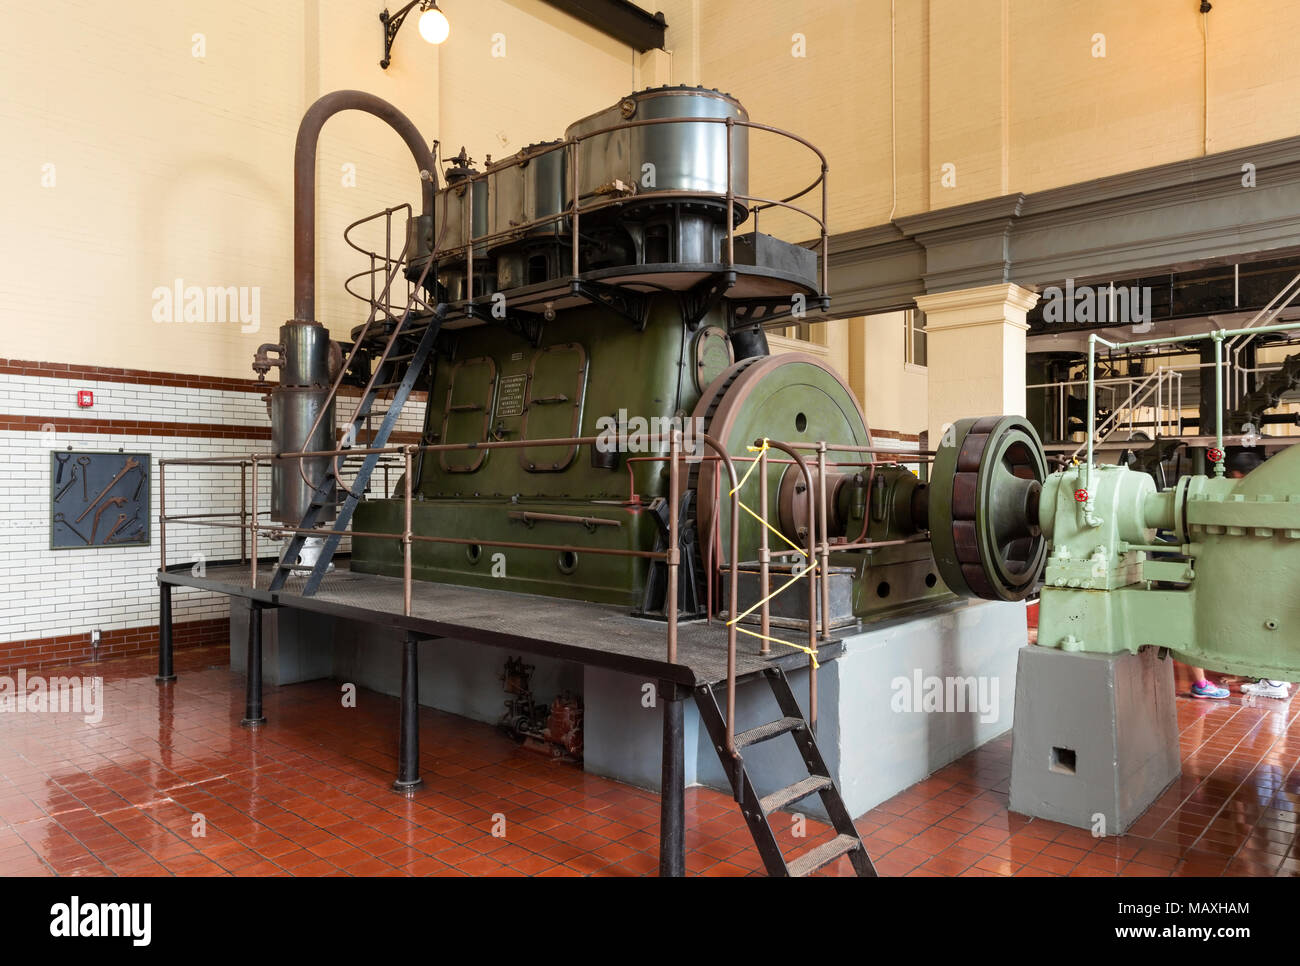 The main engine that powers the water pumps at Toronto's High Level Pumping Station. Toronto, Ontario, Canada. - Stock Image